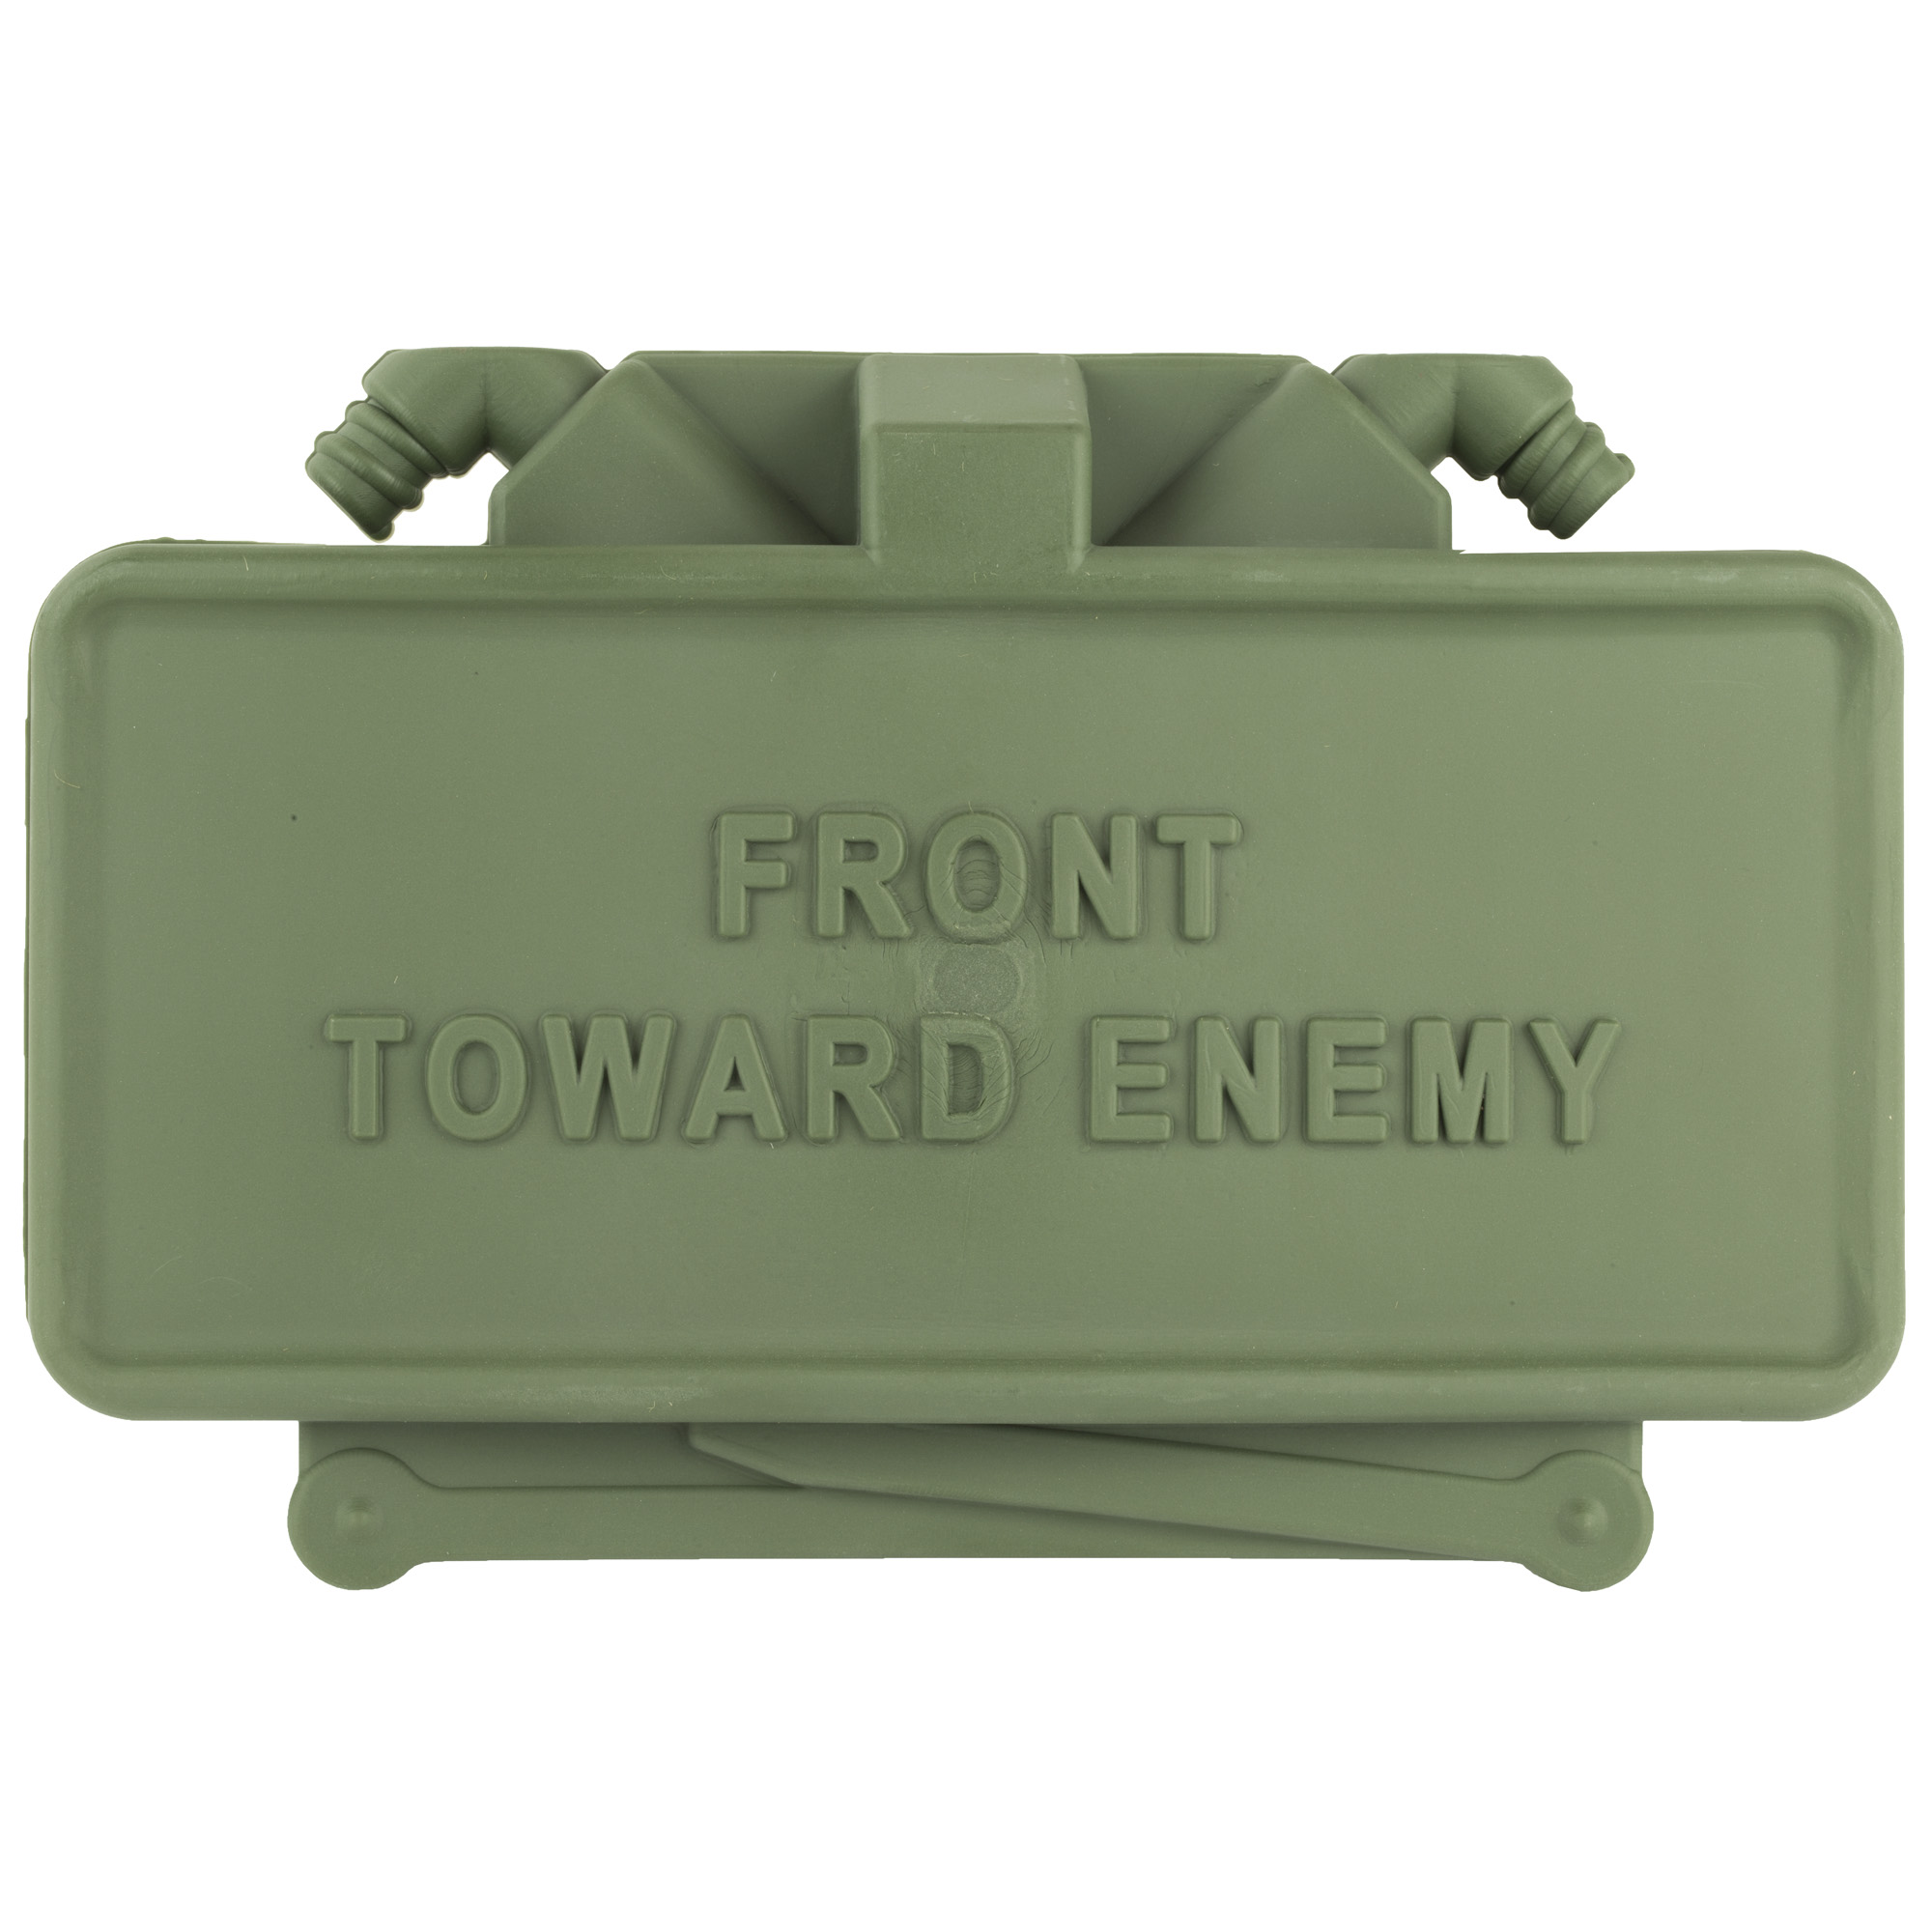 """The GG&G Replica Claymore Mine Hitch Cover will get a second look from the tailgaters in community! They attach to a standard 2"""" hitch receiver and secure with a hitch pin. We strongly advise using a locking hitch pin"""" so it does not disappear."""